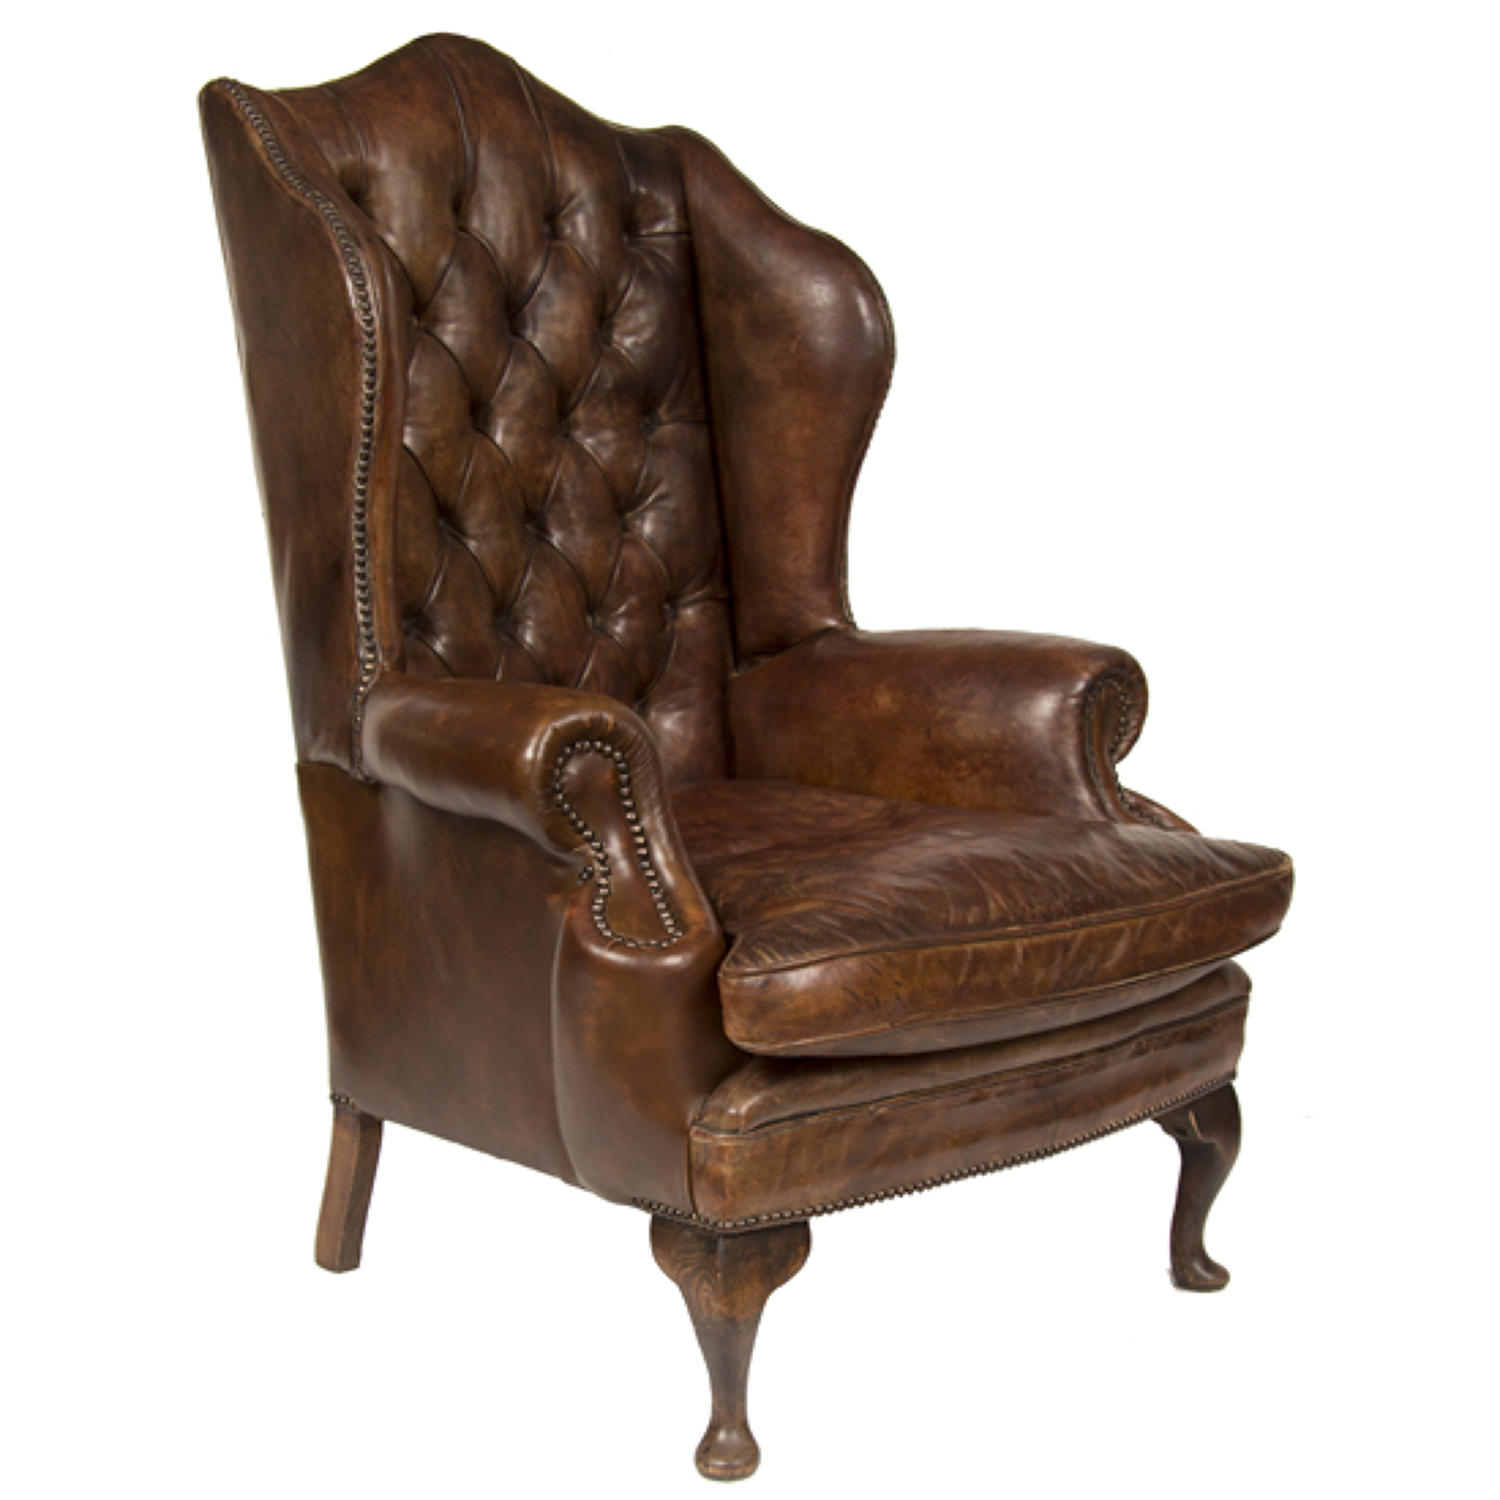 A Gentleman's Leather wing chair